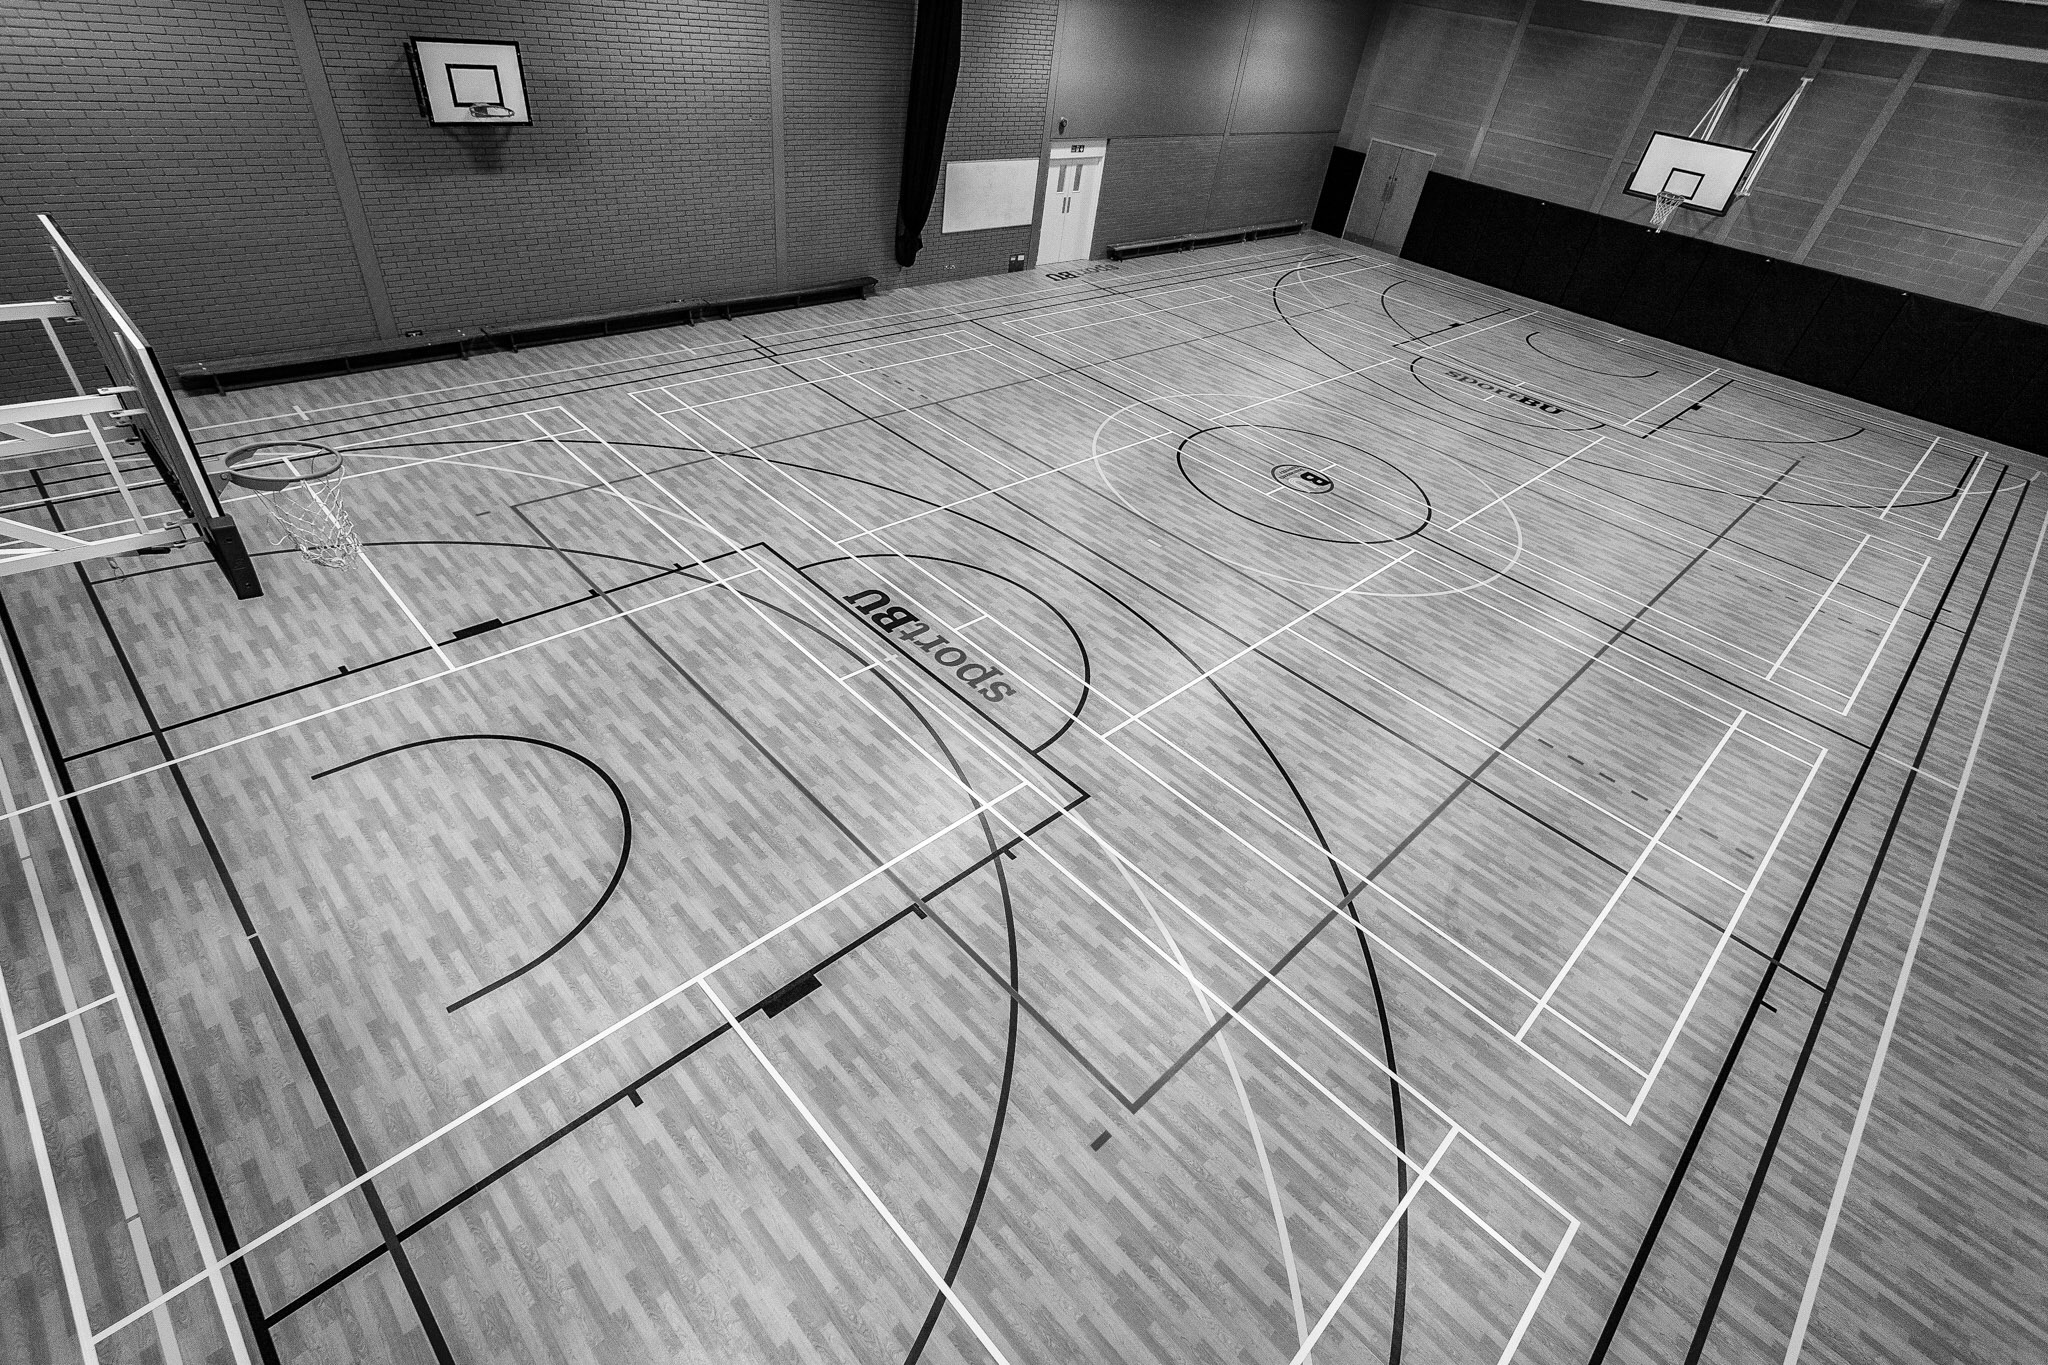 The new sports hall flooring at Bournemouth University